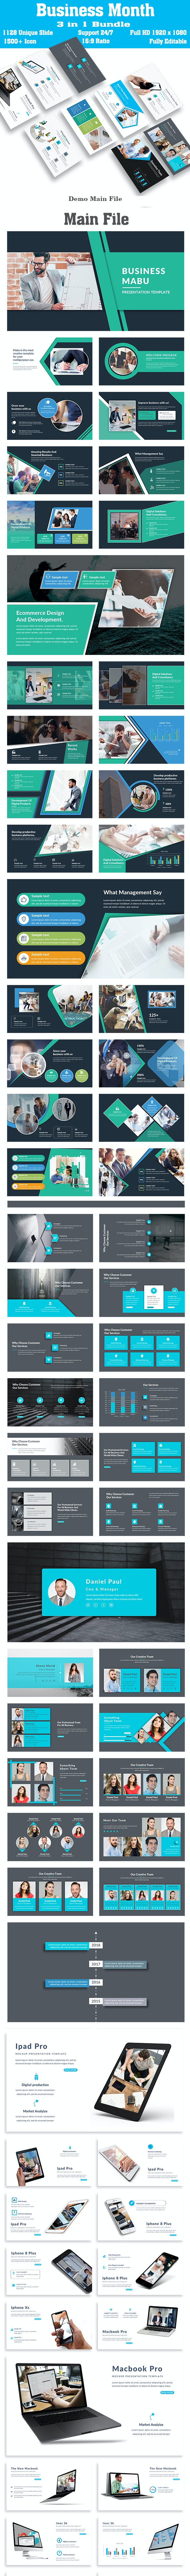 Business Bundle Month 3 in 1 Keynote Template - Business Keynote Templates